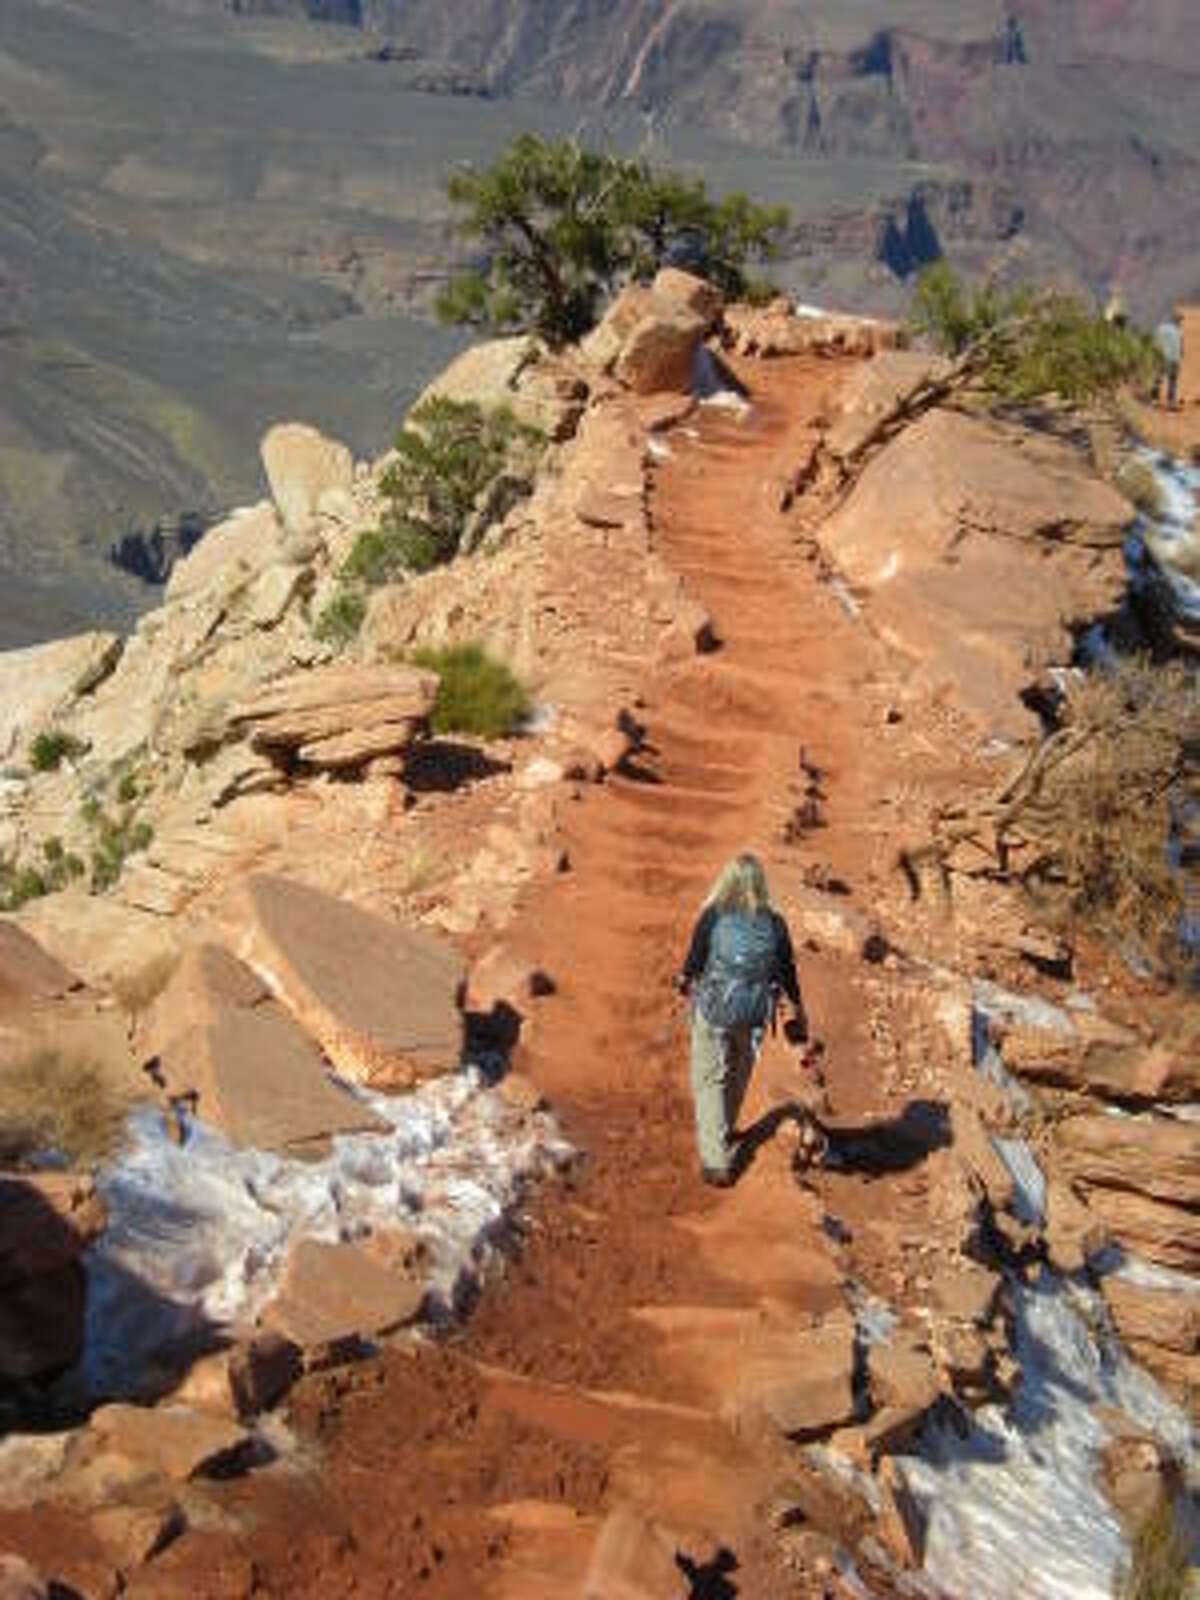 Hiking the Kaibab Trail down to the canyon.